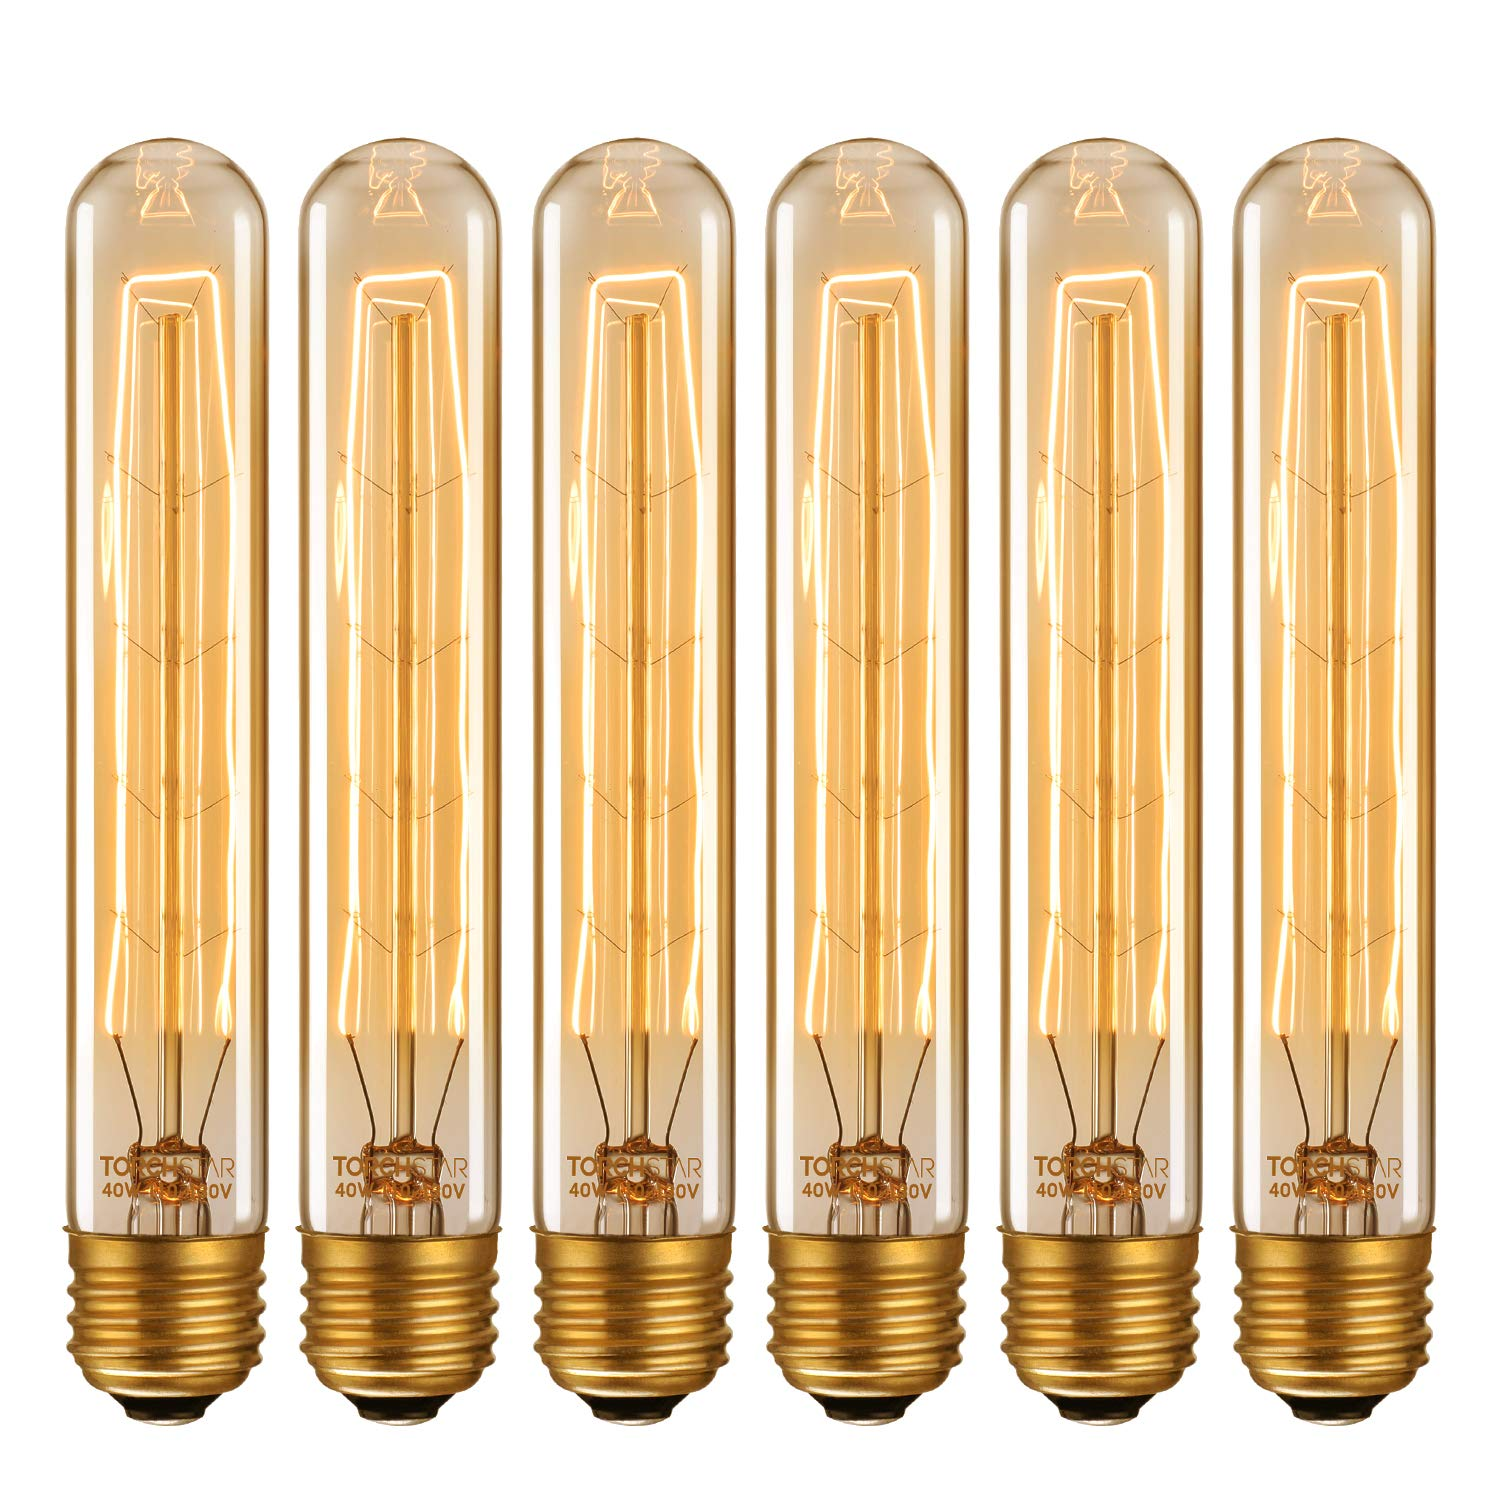 TORCHSTAR Vintage Edison Bulb, Dimmable 40W T30 Antique Filament Light Bulb, T185 Tubular Bulb, E26 Base, 2200K Amber Light, for Pendant, Chandelier, Lantern, Wall Sconce, Pack of 6